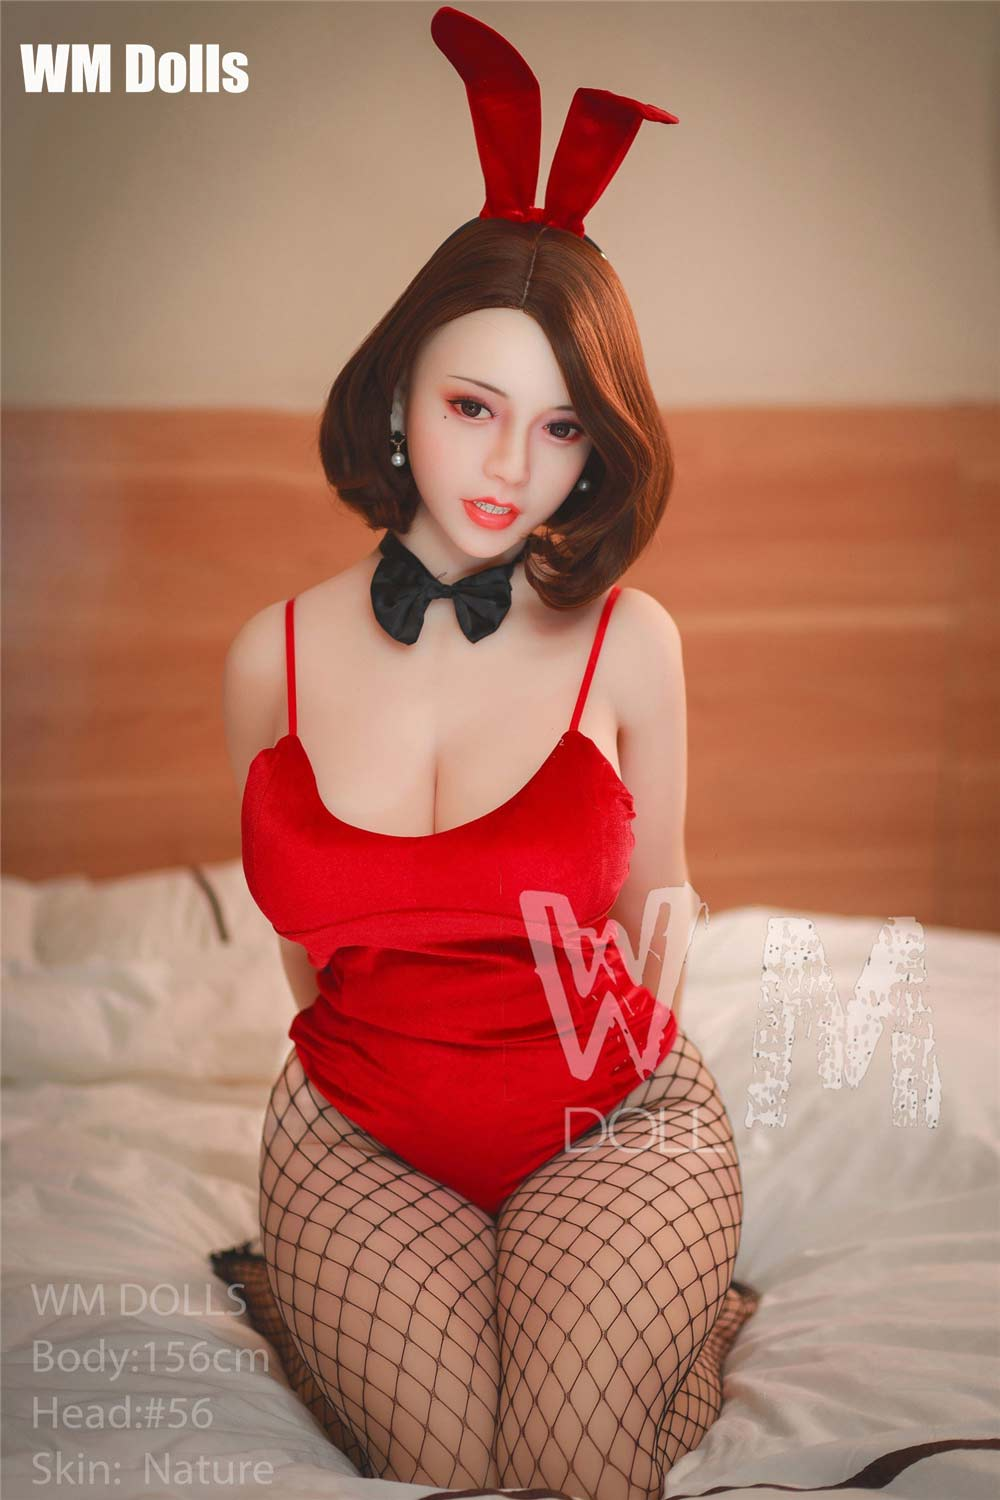 Big breasted sex doll kneeling on the bed